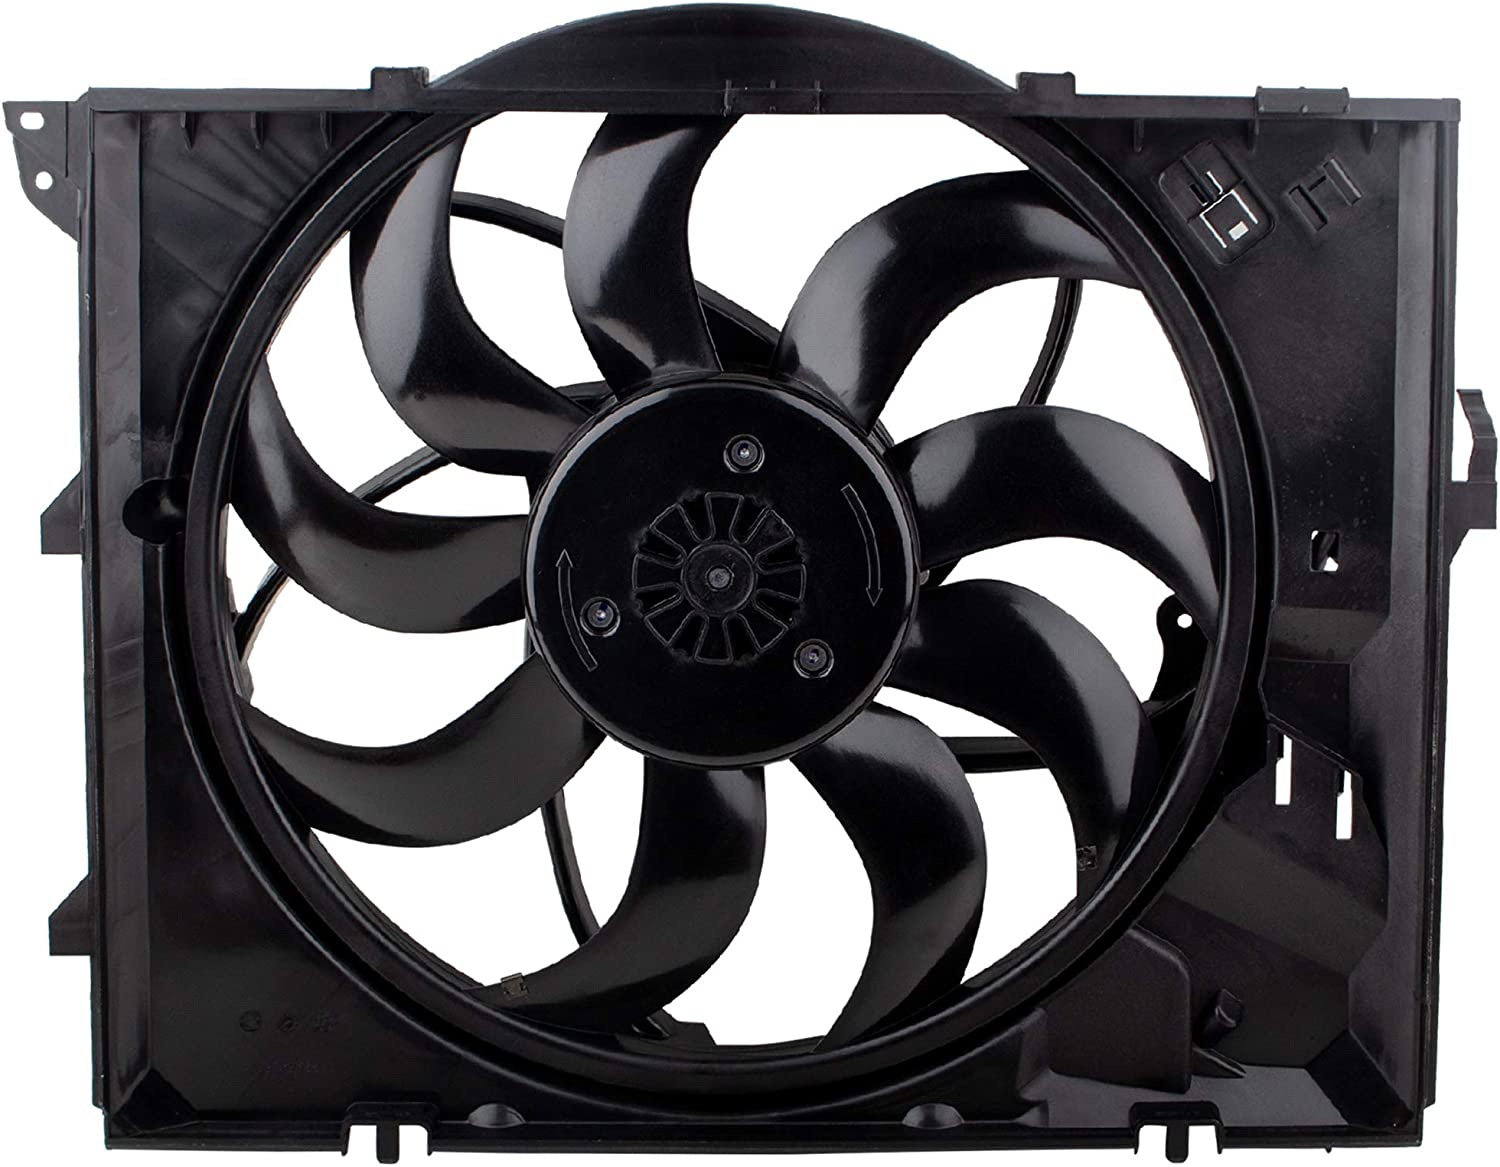 BOXI Radiator Cooling Fan Assembly for 2008-2013 BMW 128i Convertible/ 2006 BMW 325i/ 2007-13 BMW 328i/ 2006 BMW 330i / BMW E87 E90 L6 3.0L N52N Engine ONLY (Replaces 17427562080 BM3117101)